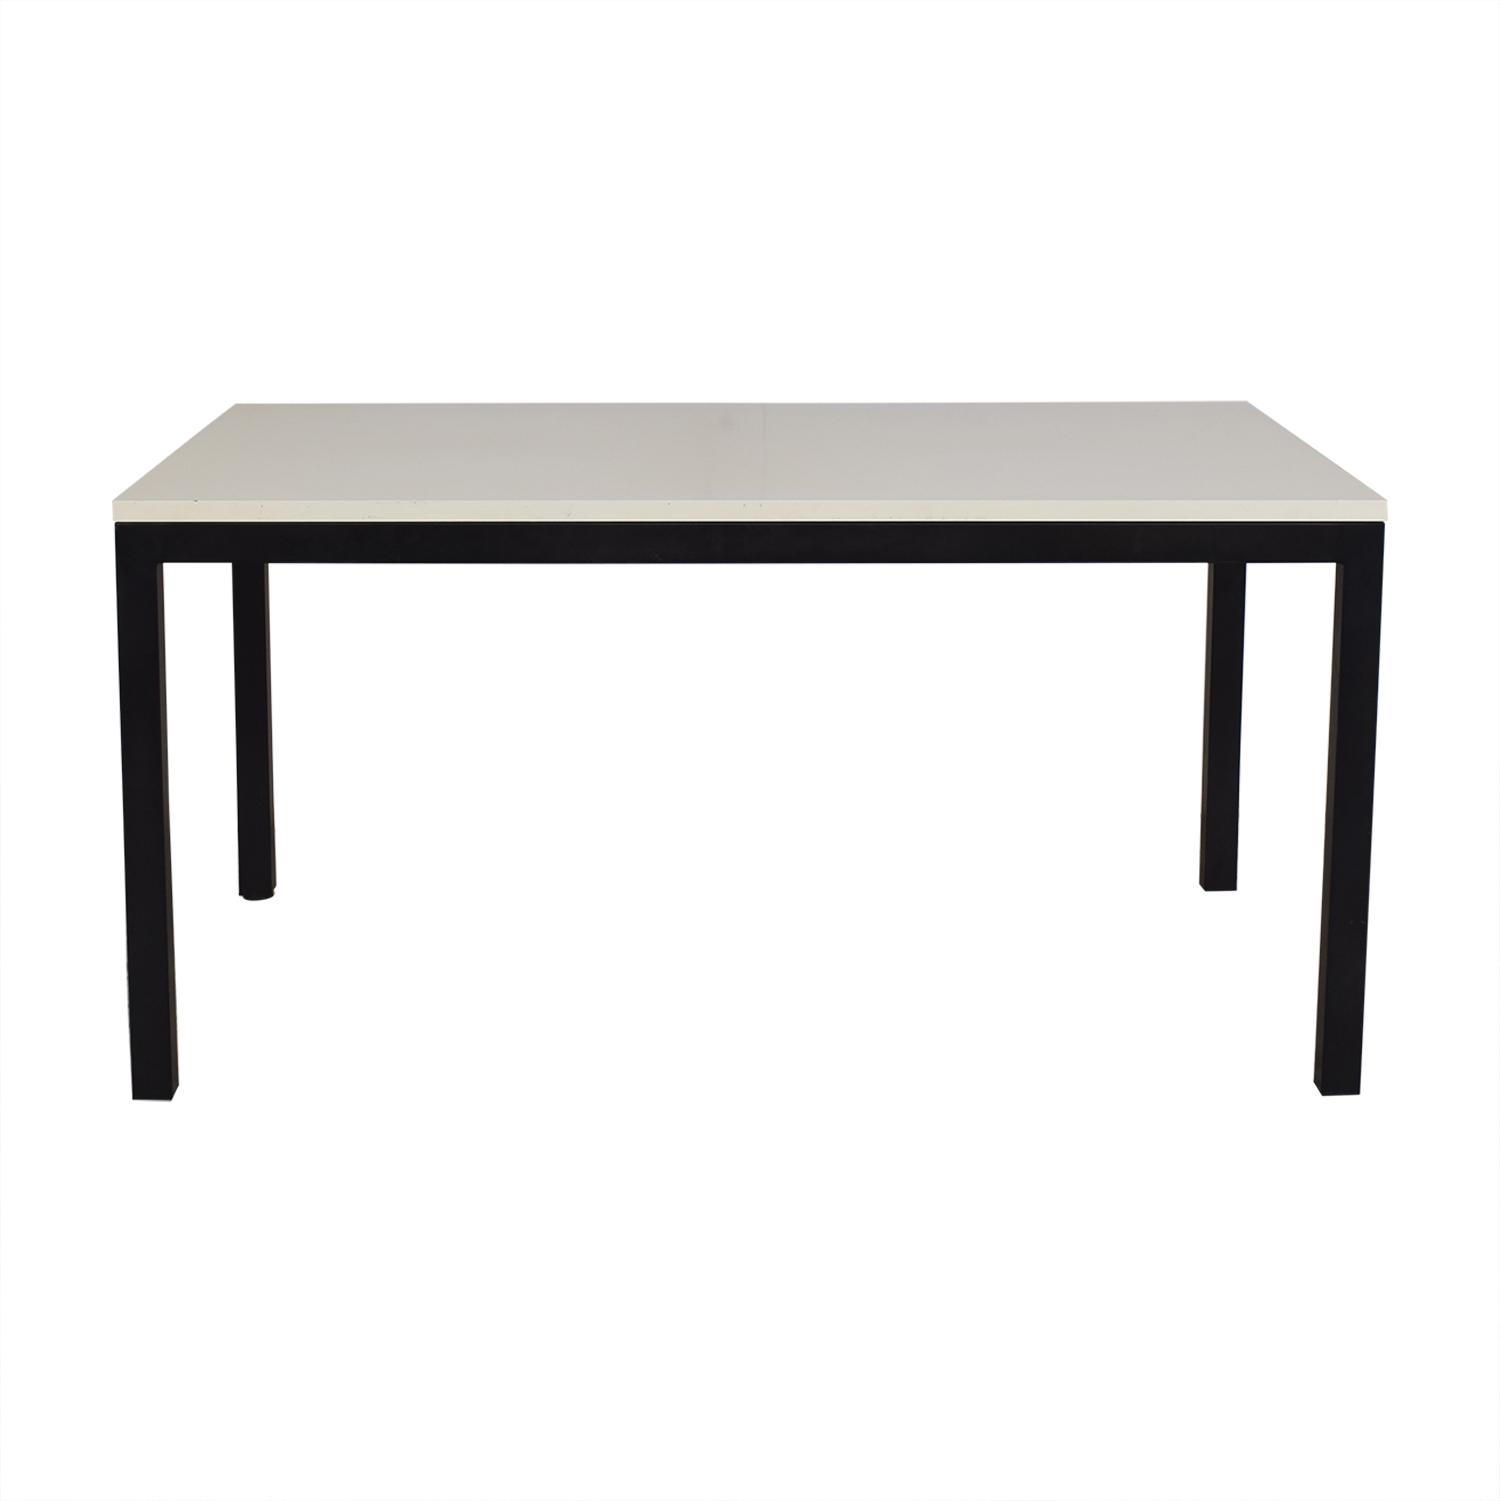 Crate & Barrel Crate & Barrel Parsons Dining Table dimensions